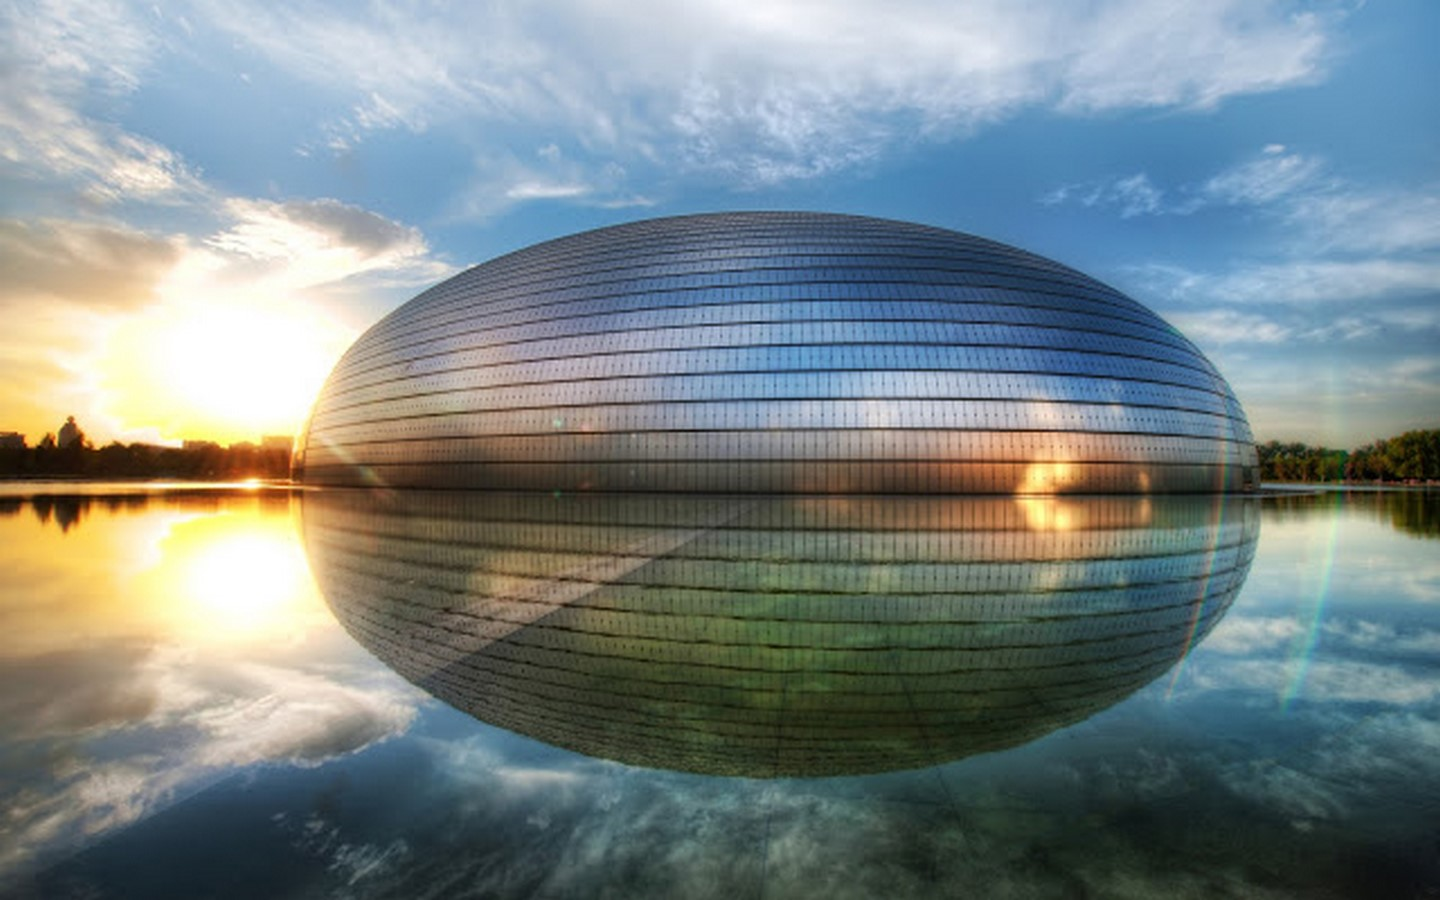 National Centre For The Performing Arts by Paul Andreu: Situated in the heart of Beijing - Sheet5